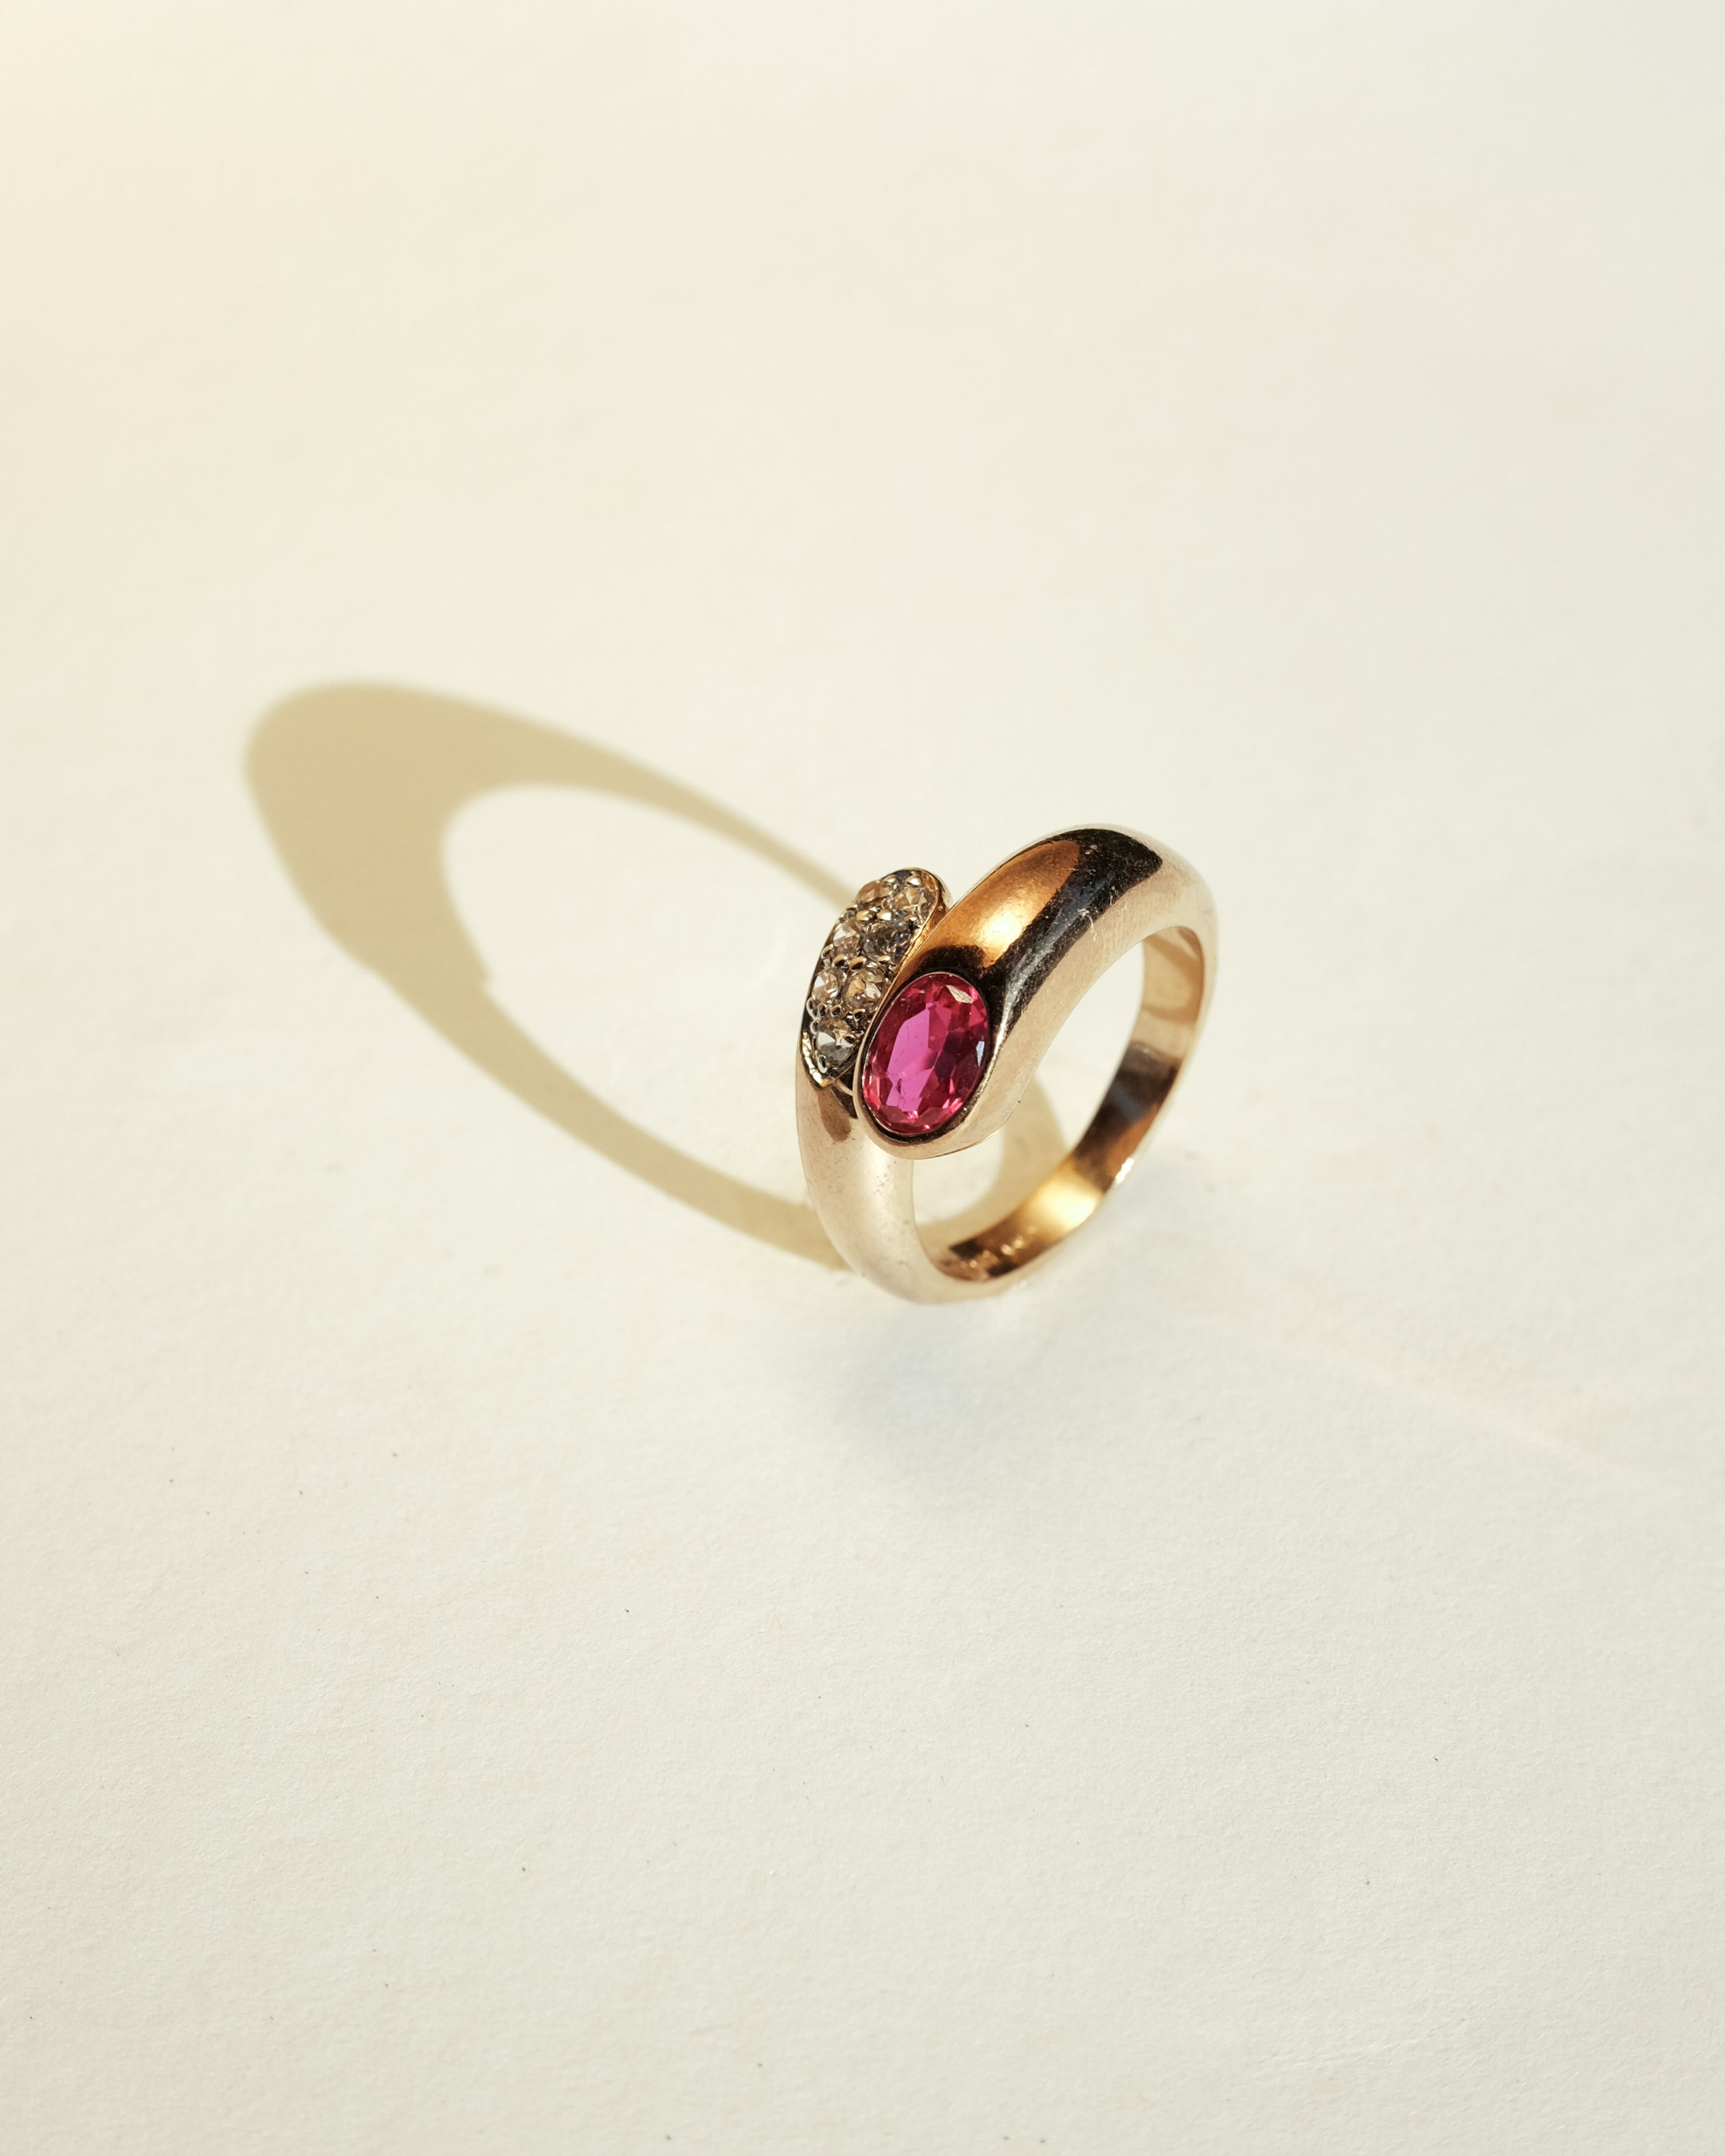 VINTAGE 14K YELLOW GOLD PLATED RING WITH CUBIC ZIRCONIA [SIZE 9]